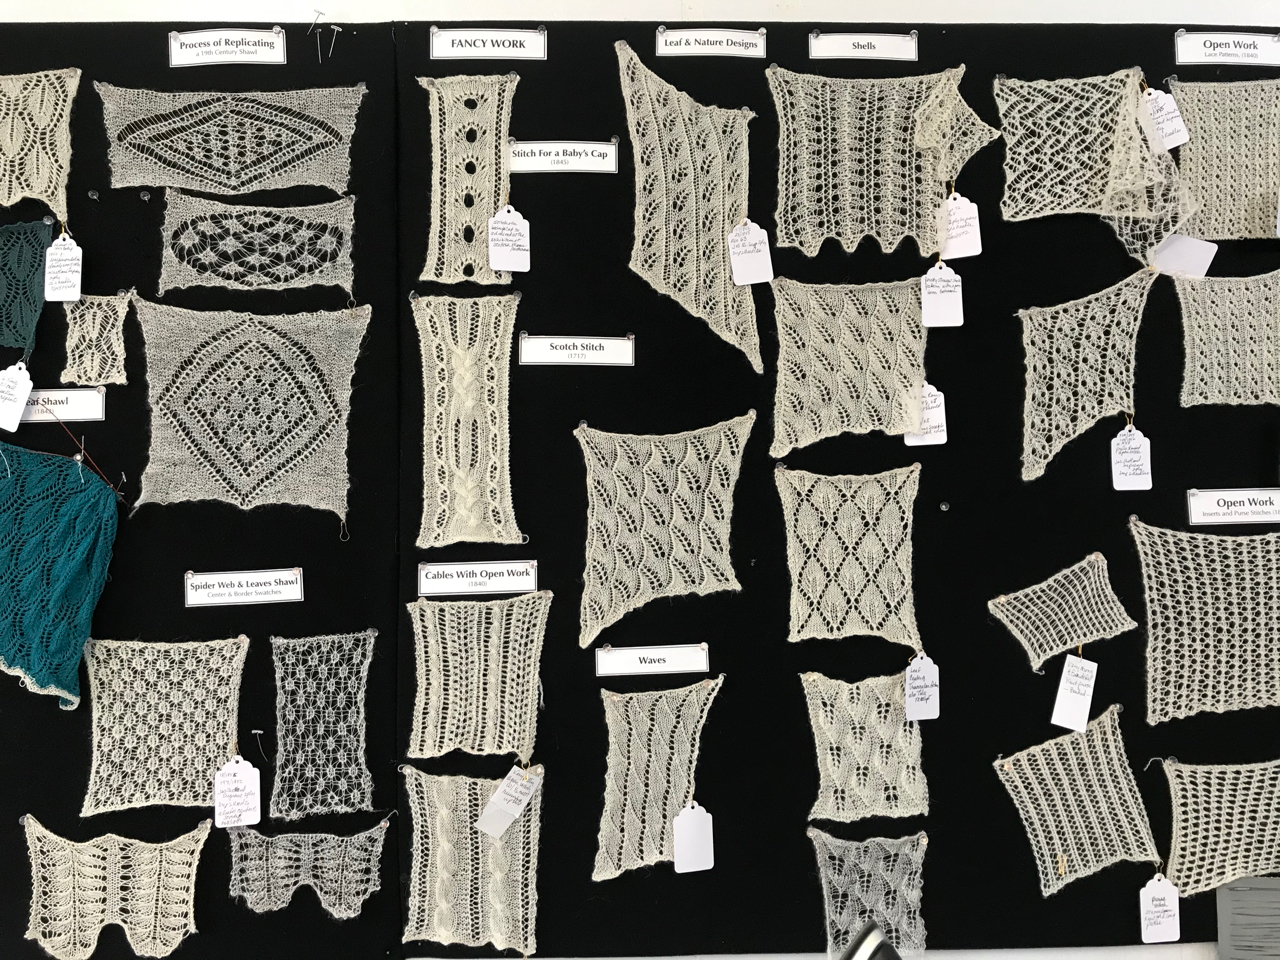 Lace Swatches, 1717 - 1842